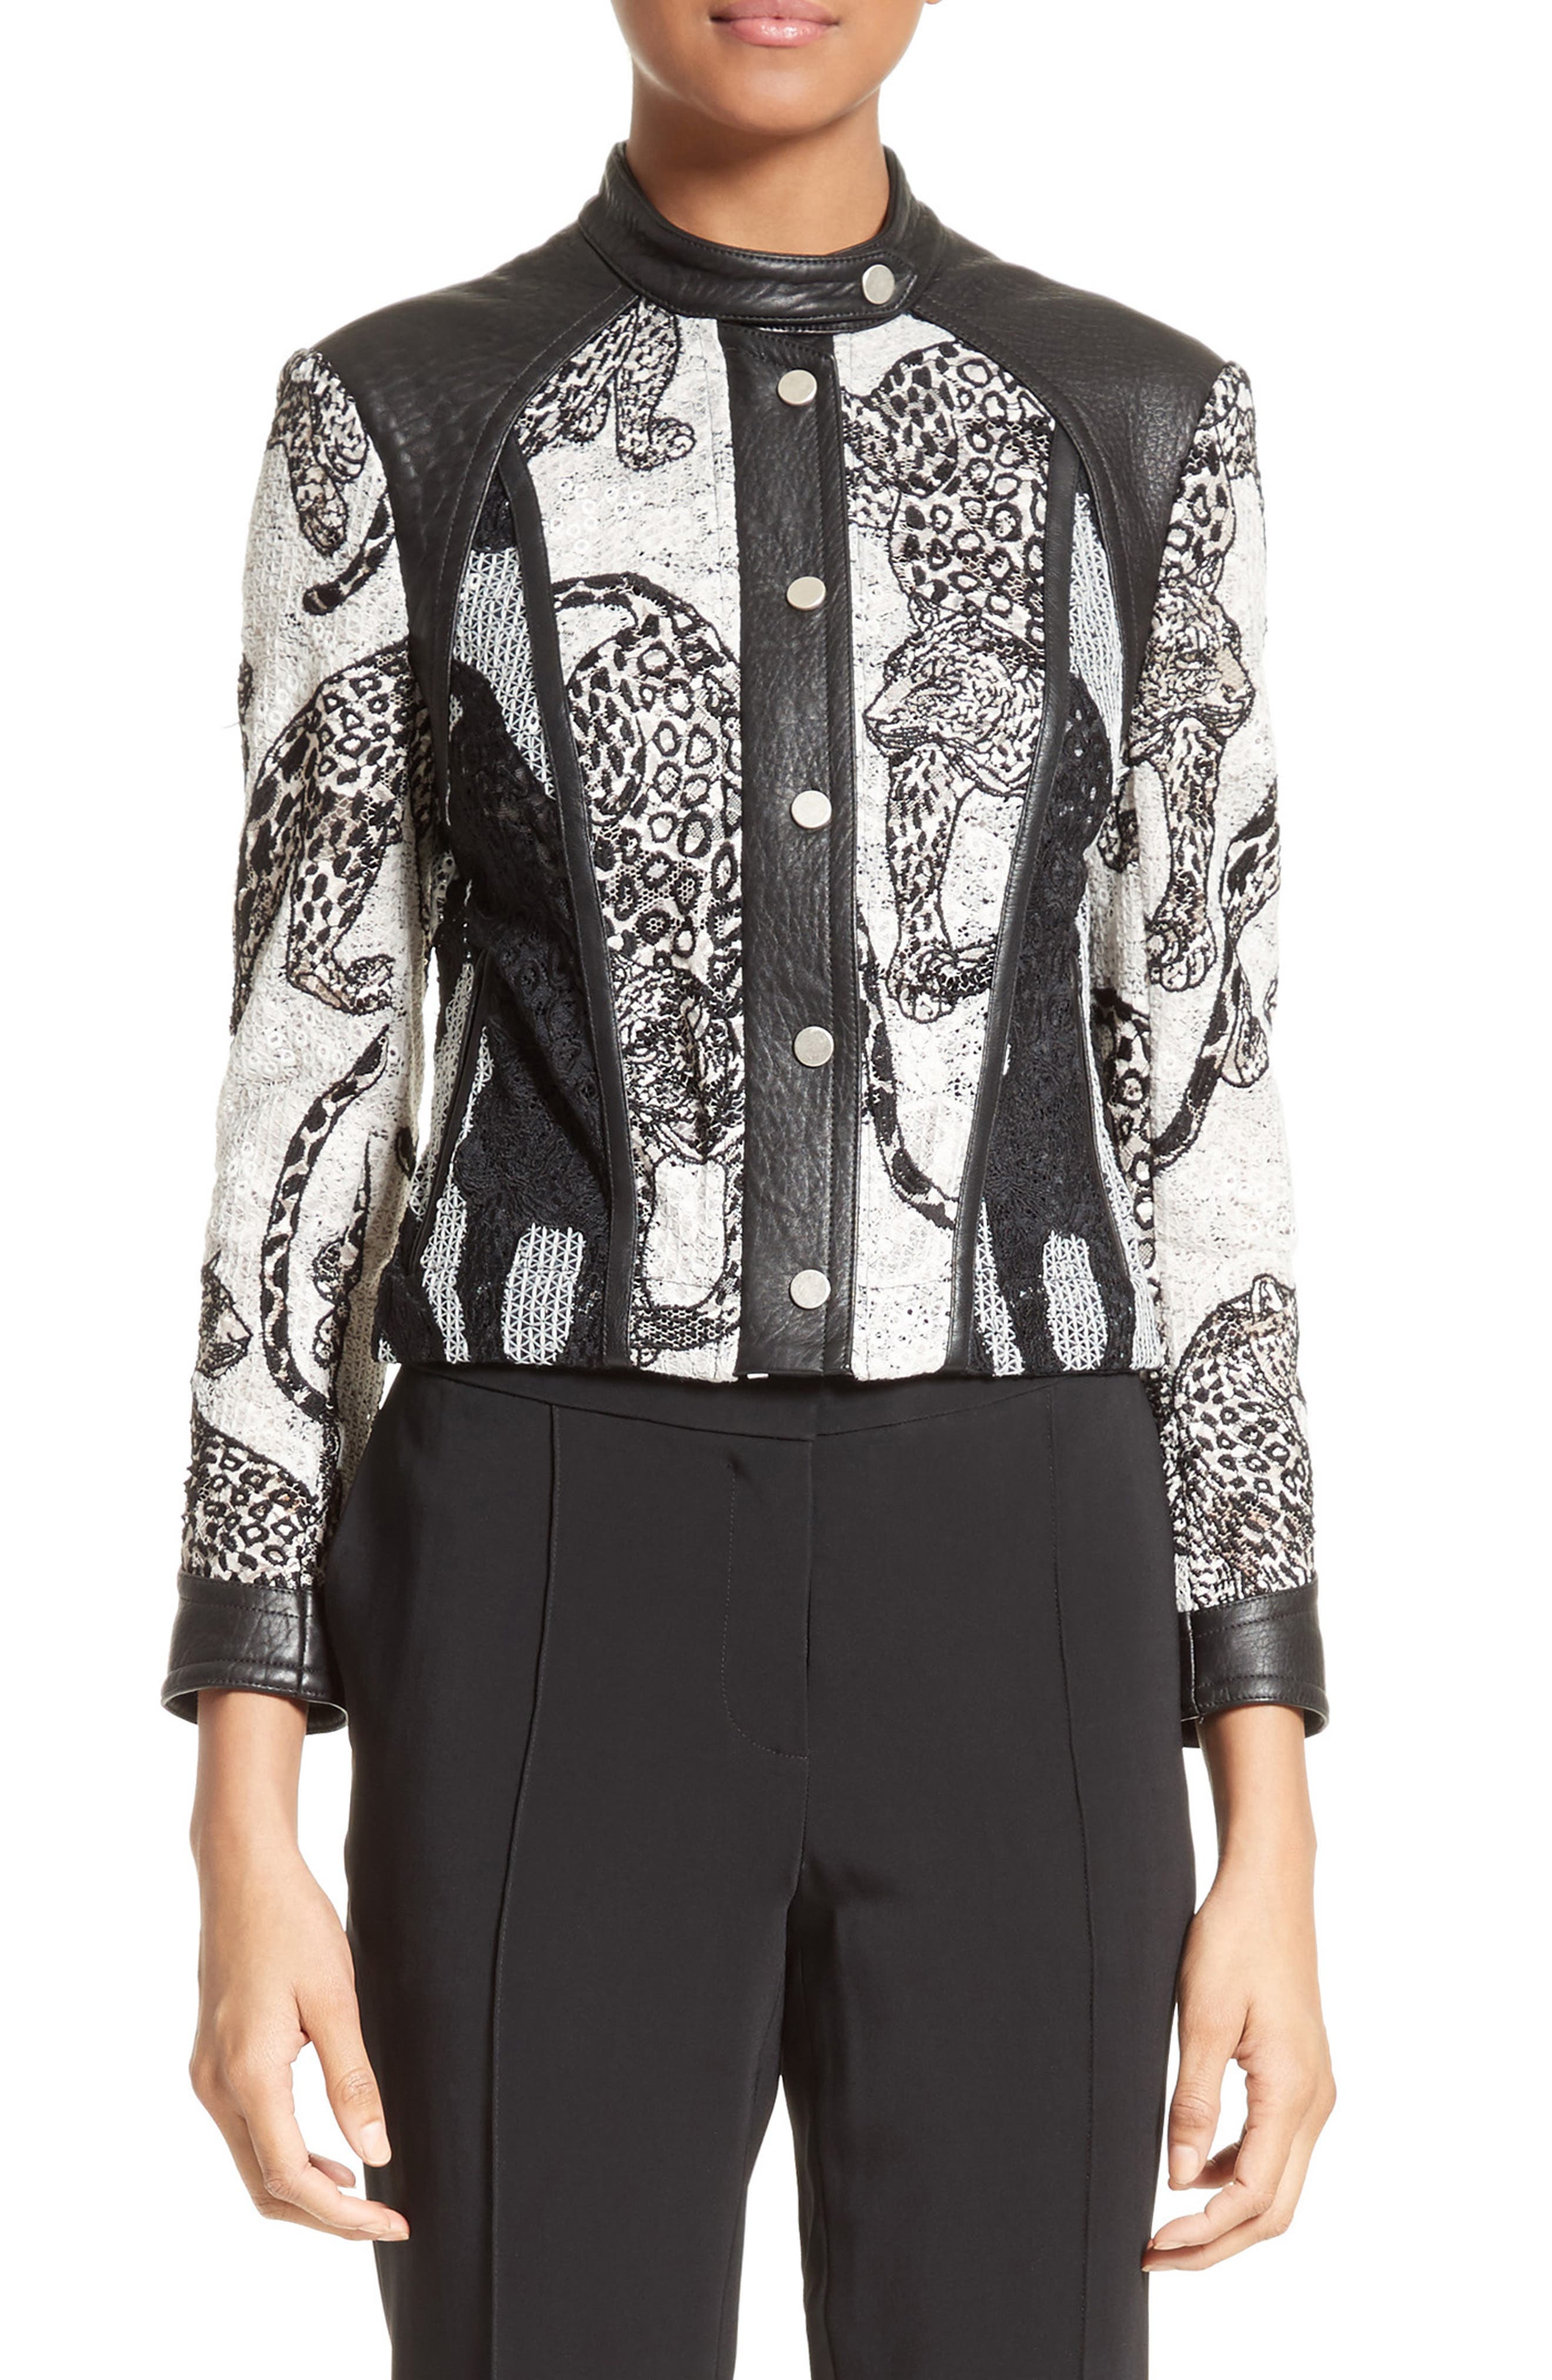 Alternate Image 1 Selected - Yigal Azrouël Lace & Leather Moto Jacket